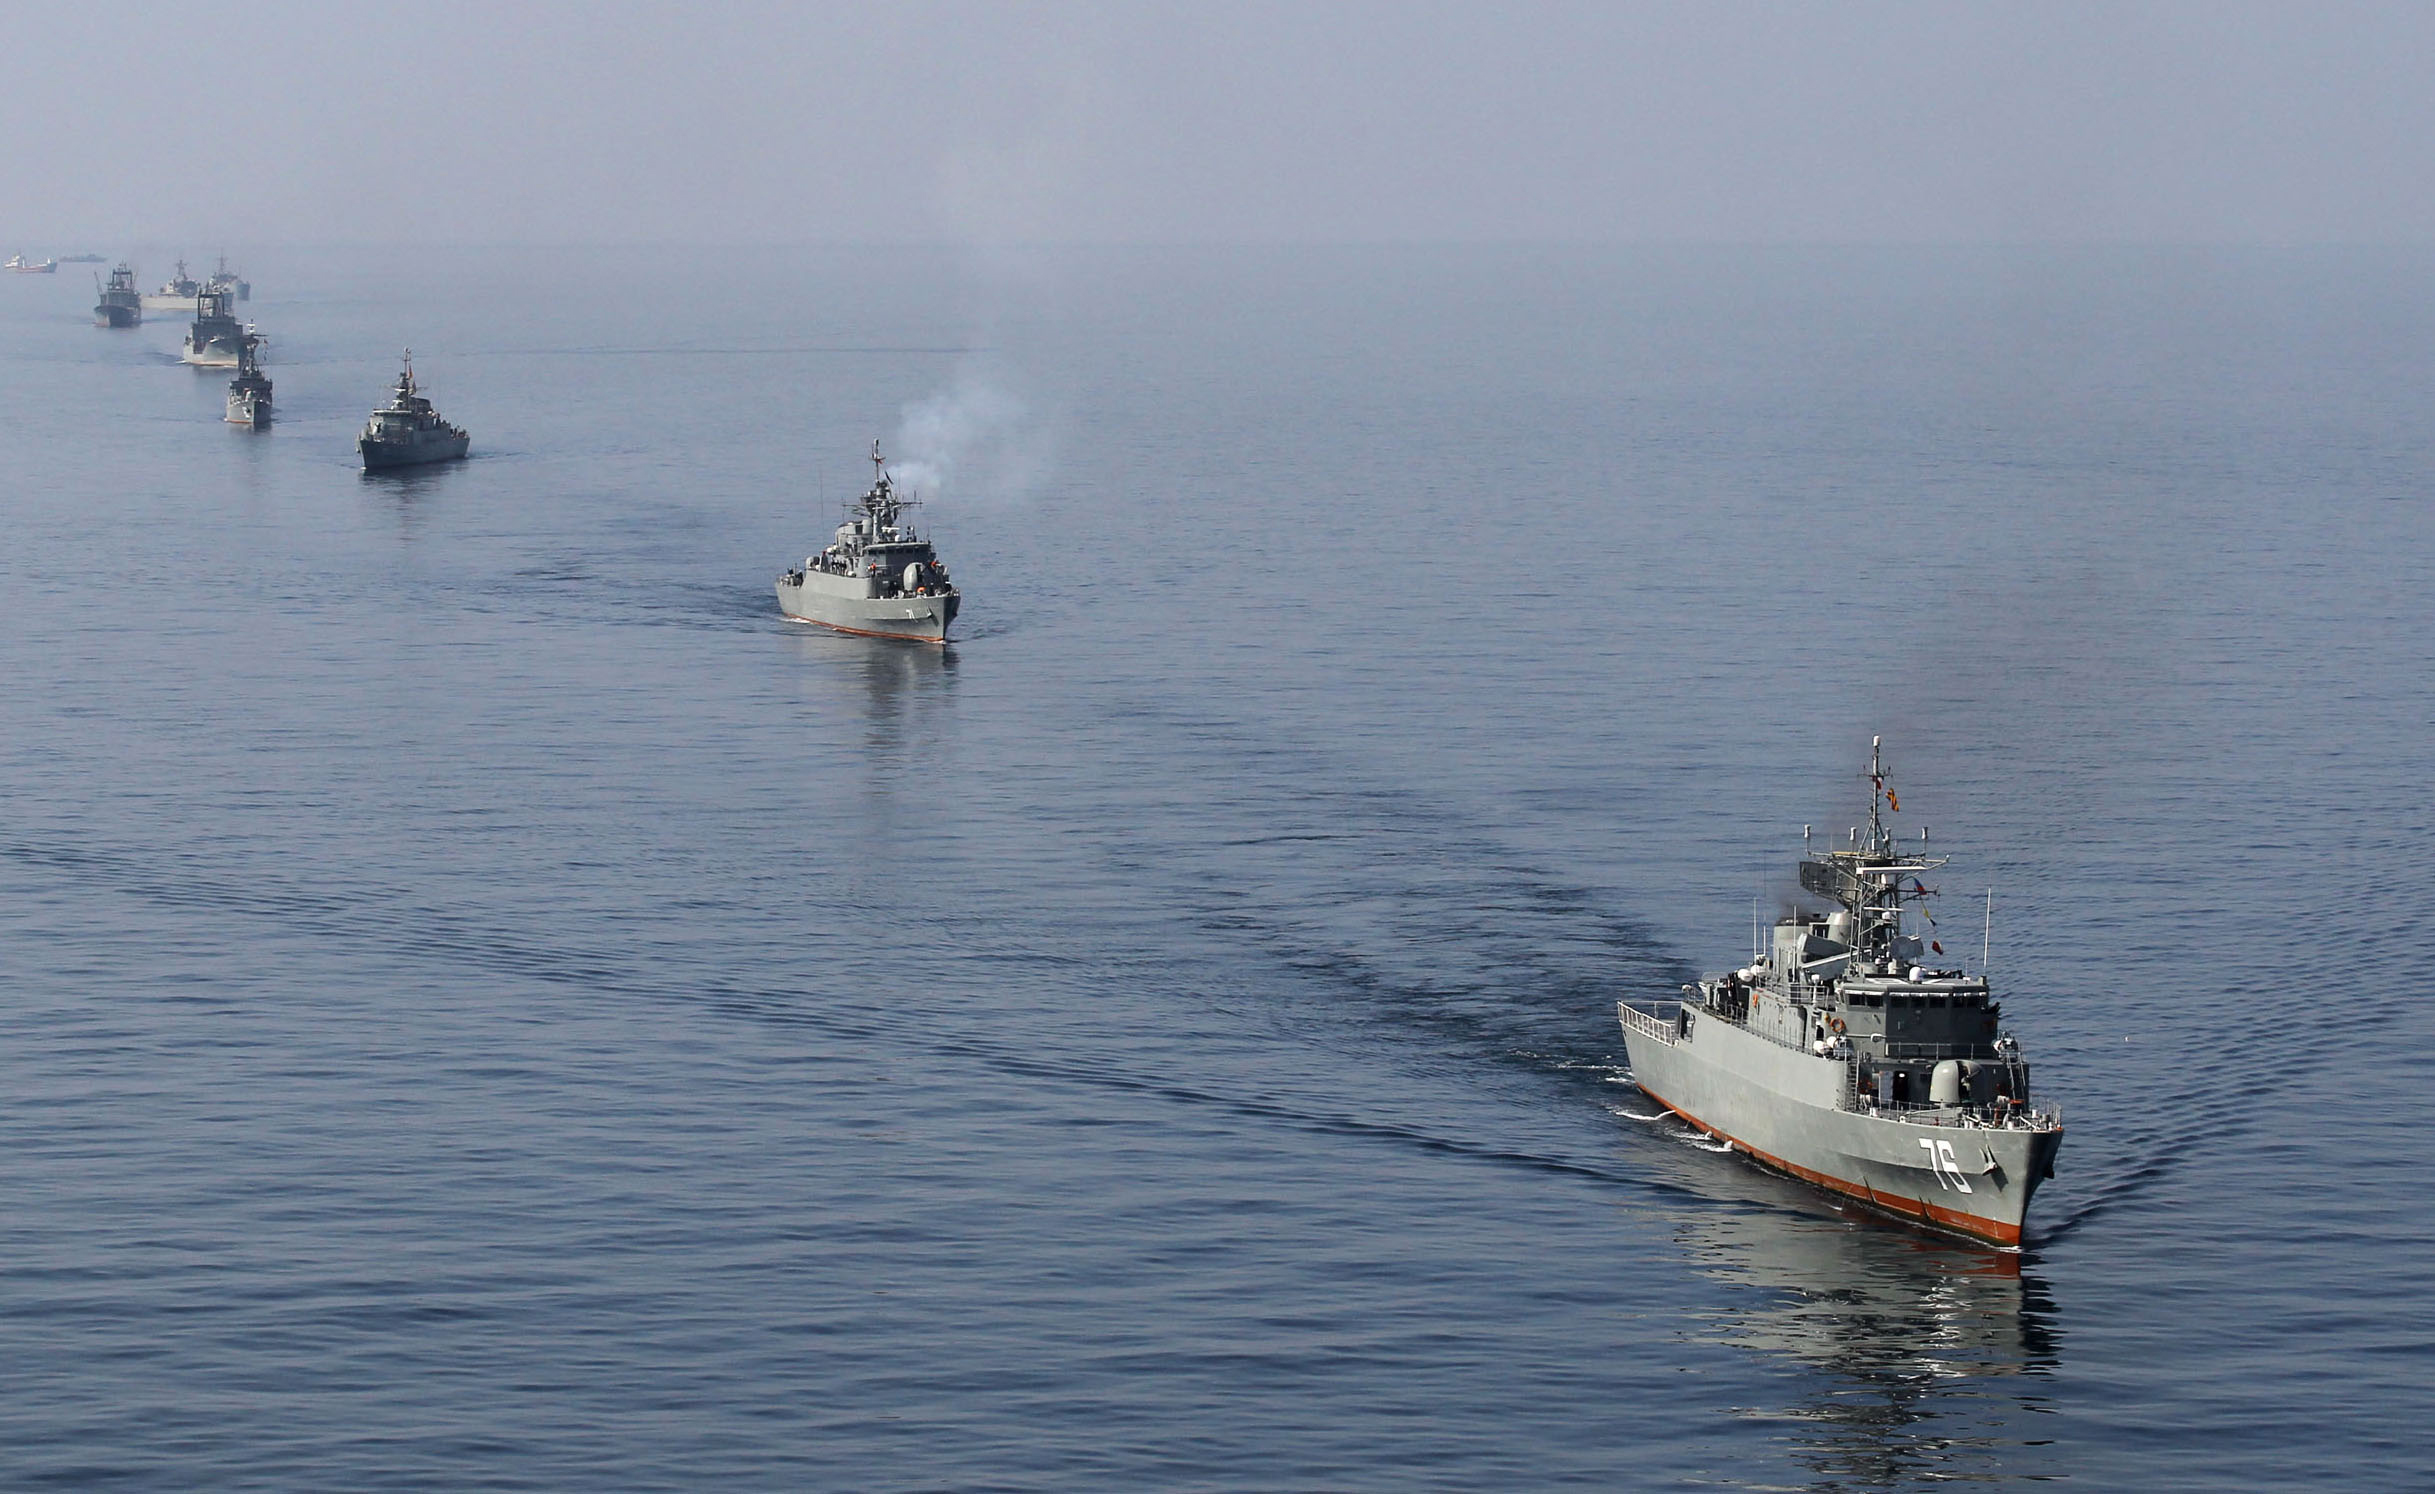 No harassment of US ships by Iran despite nuclear deal demise, says Navy's top officer